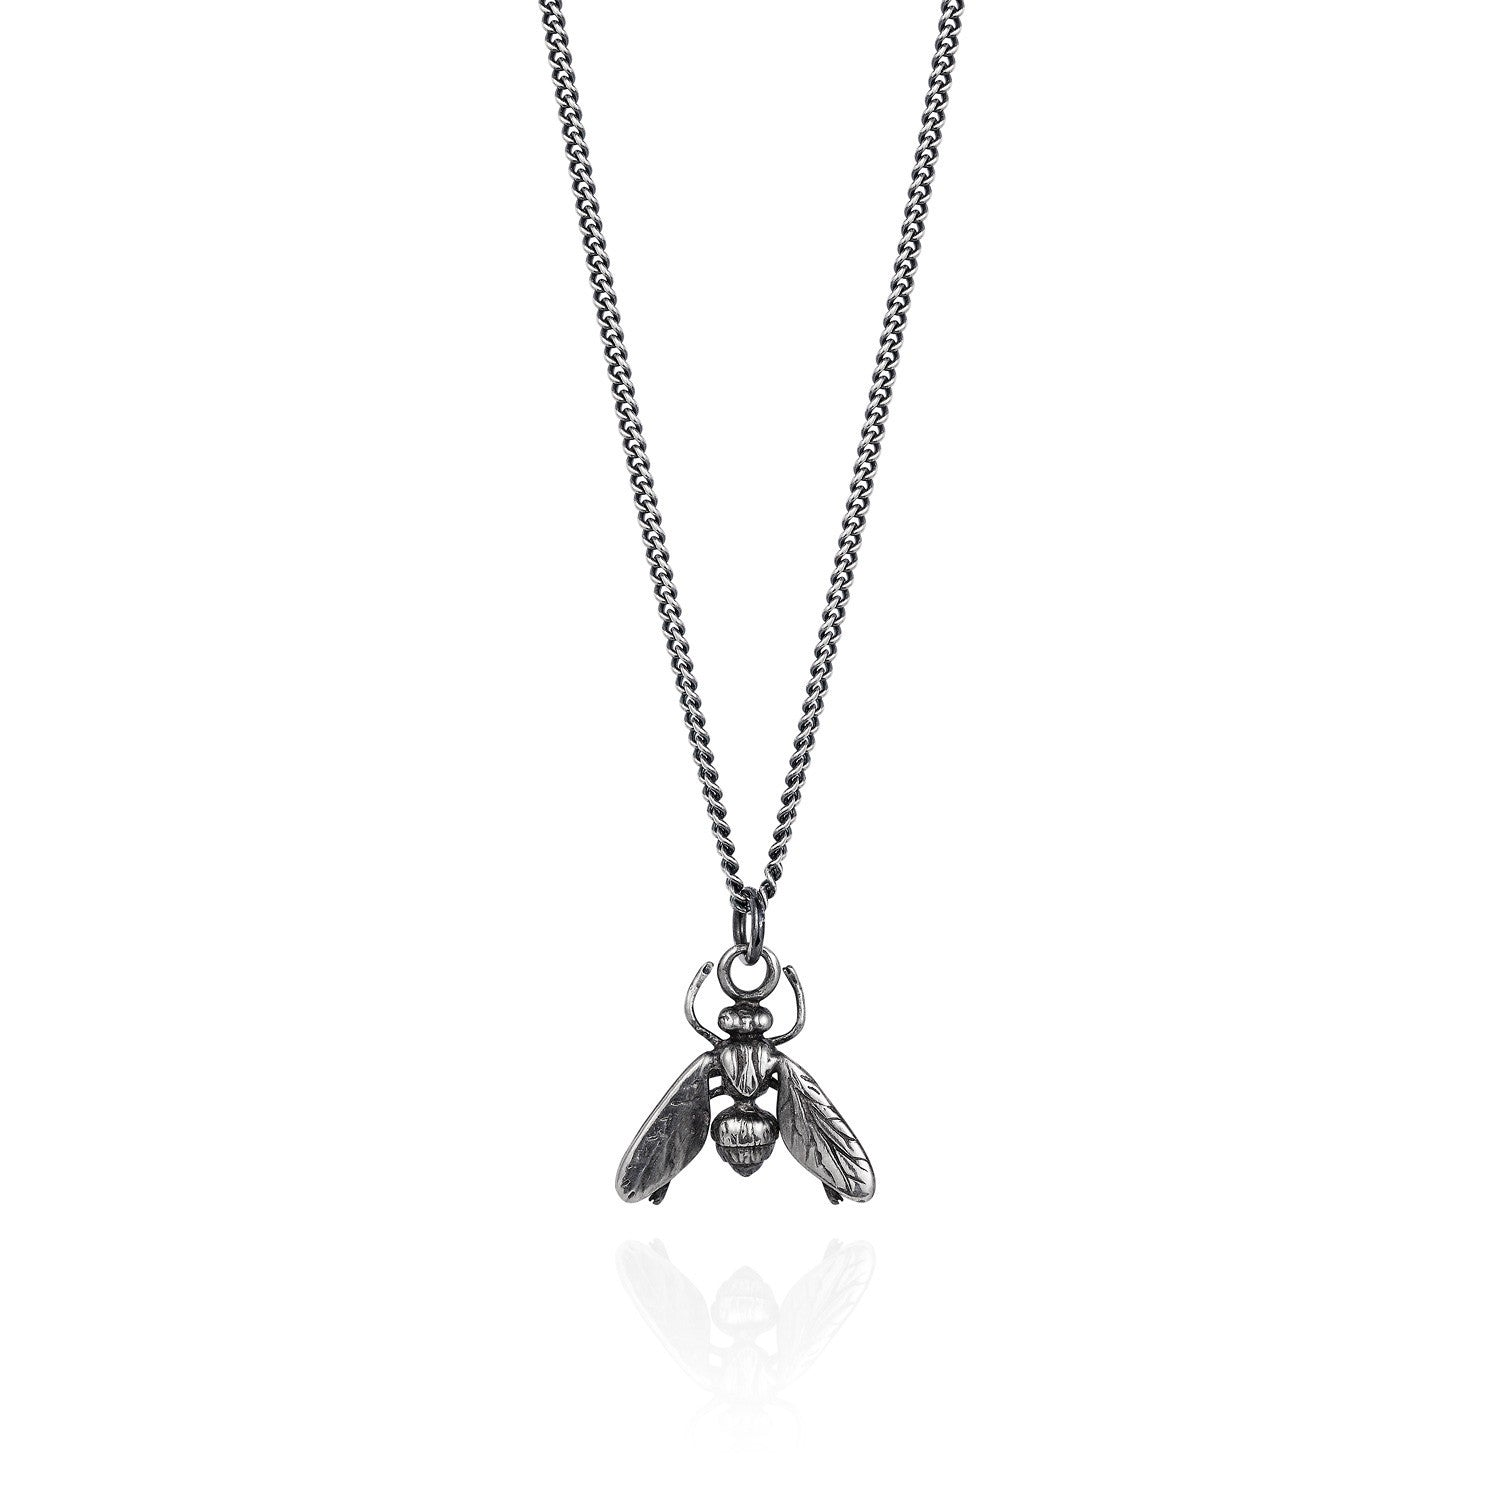 Dark Silver Hoverfly Necklace